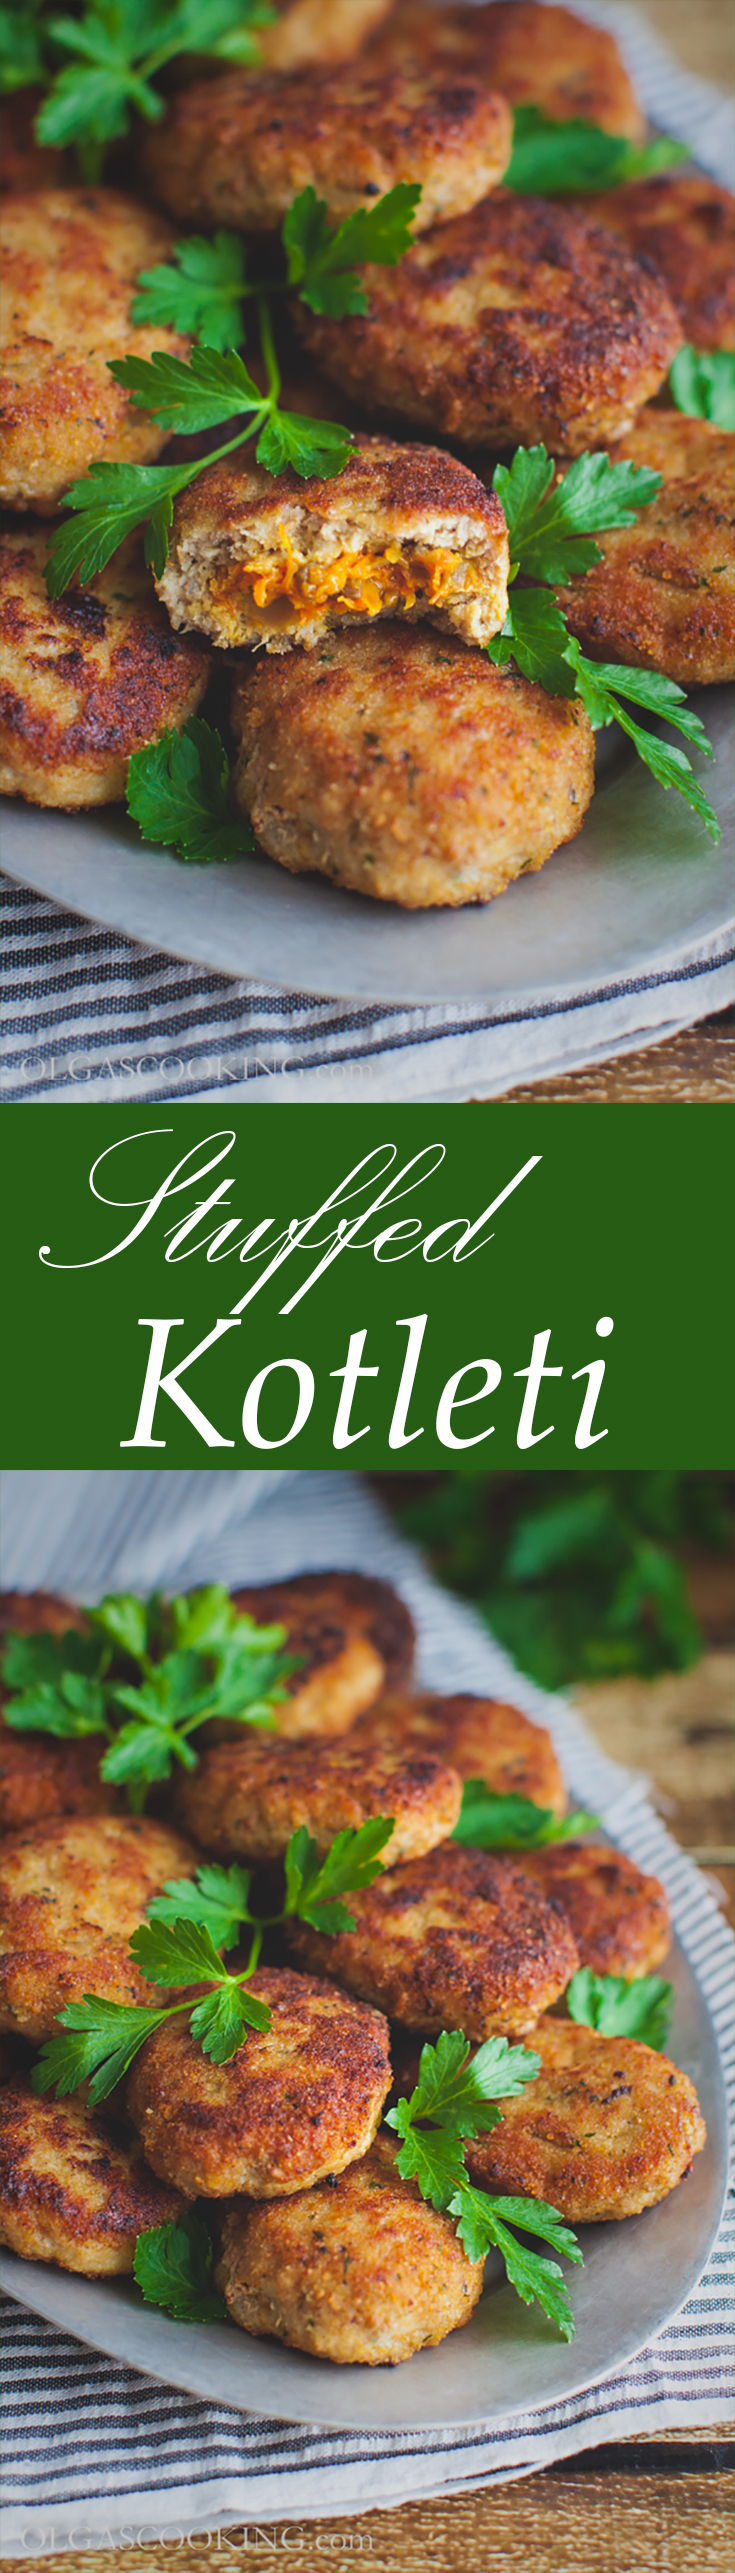 Stuffed Kotleti...Russian stuffed meatballs...simple and yummy!